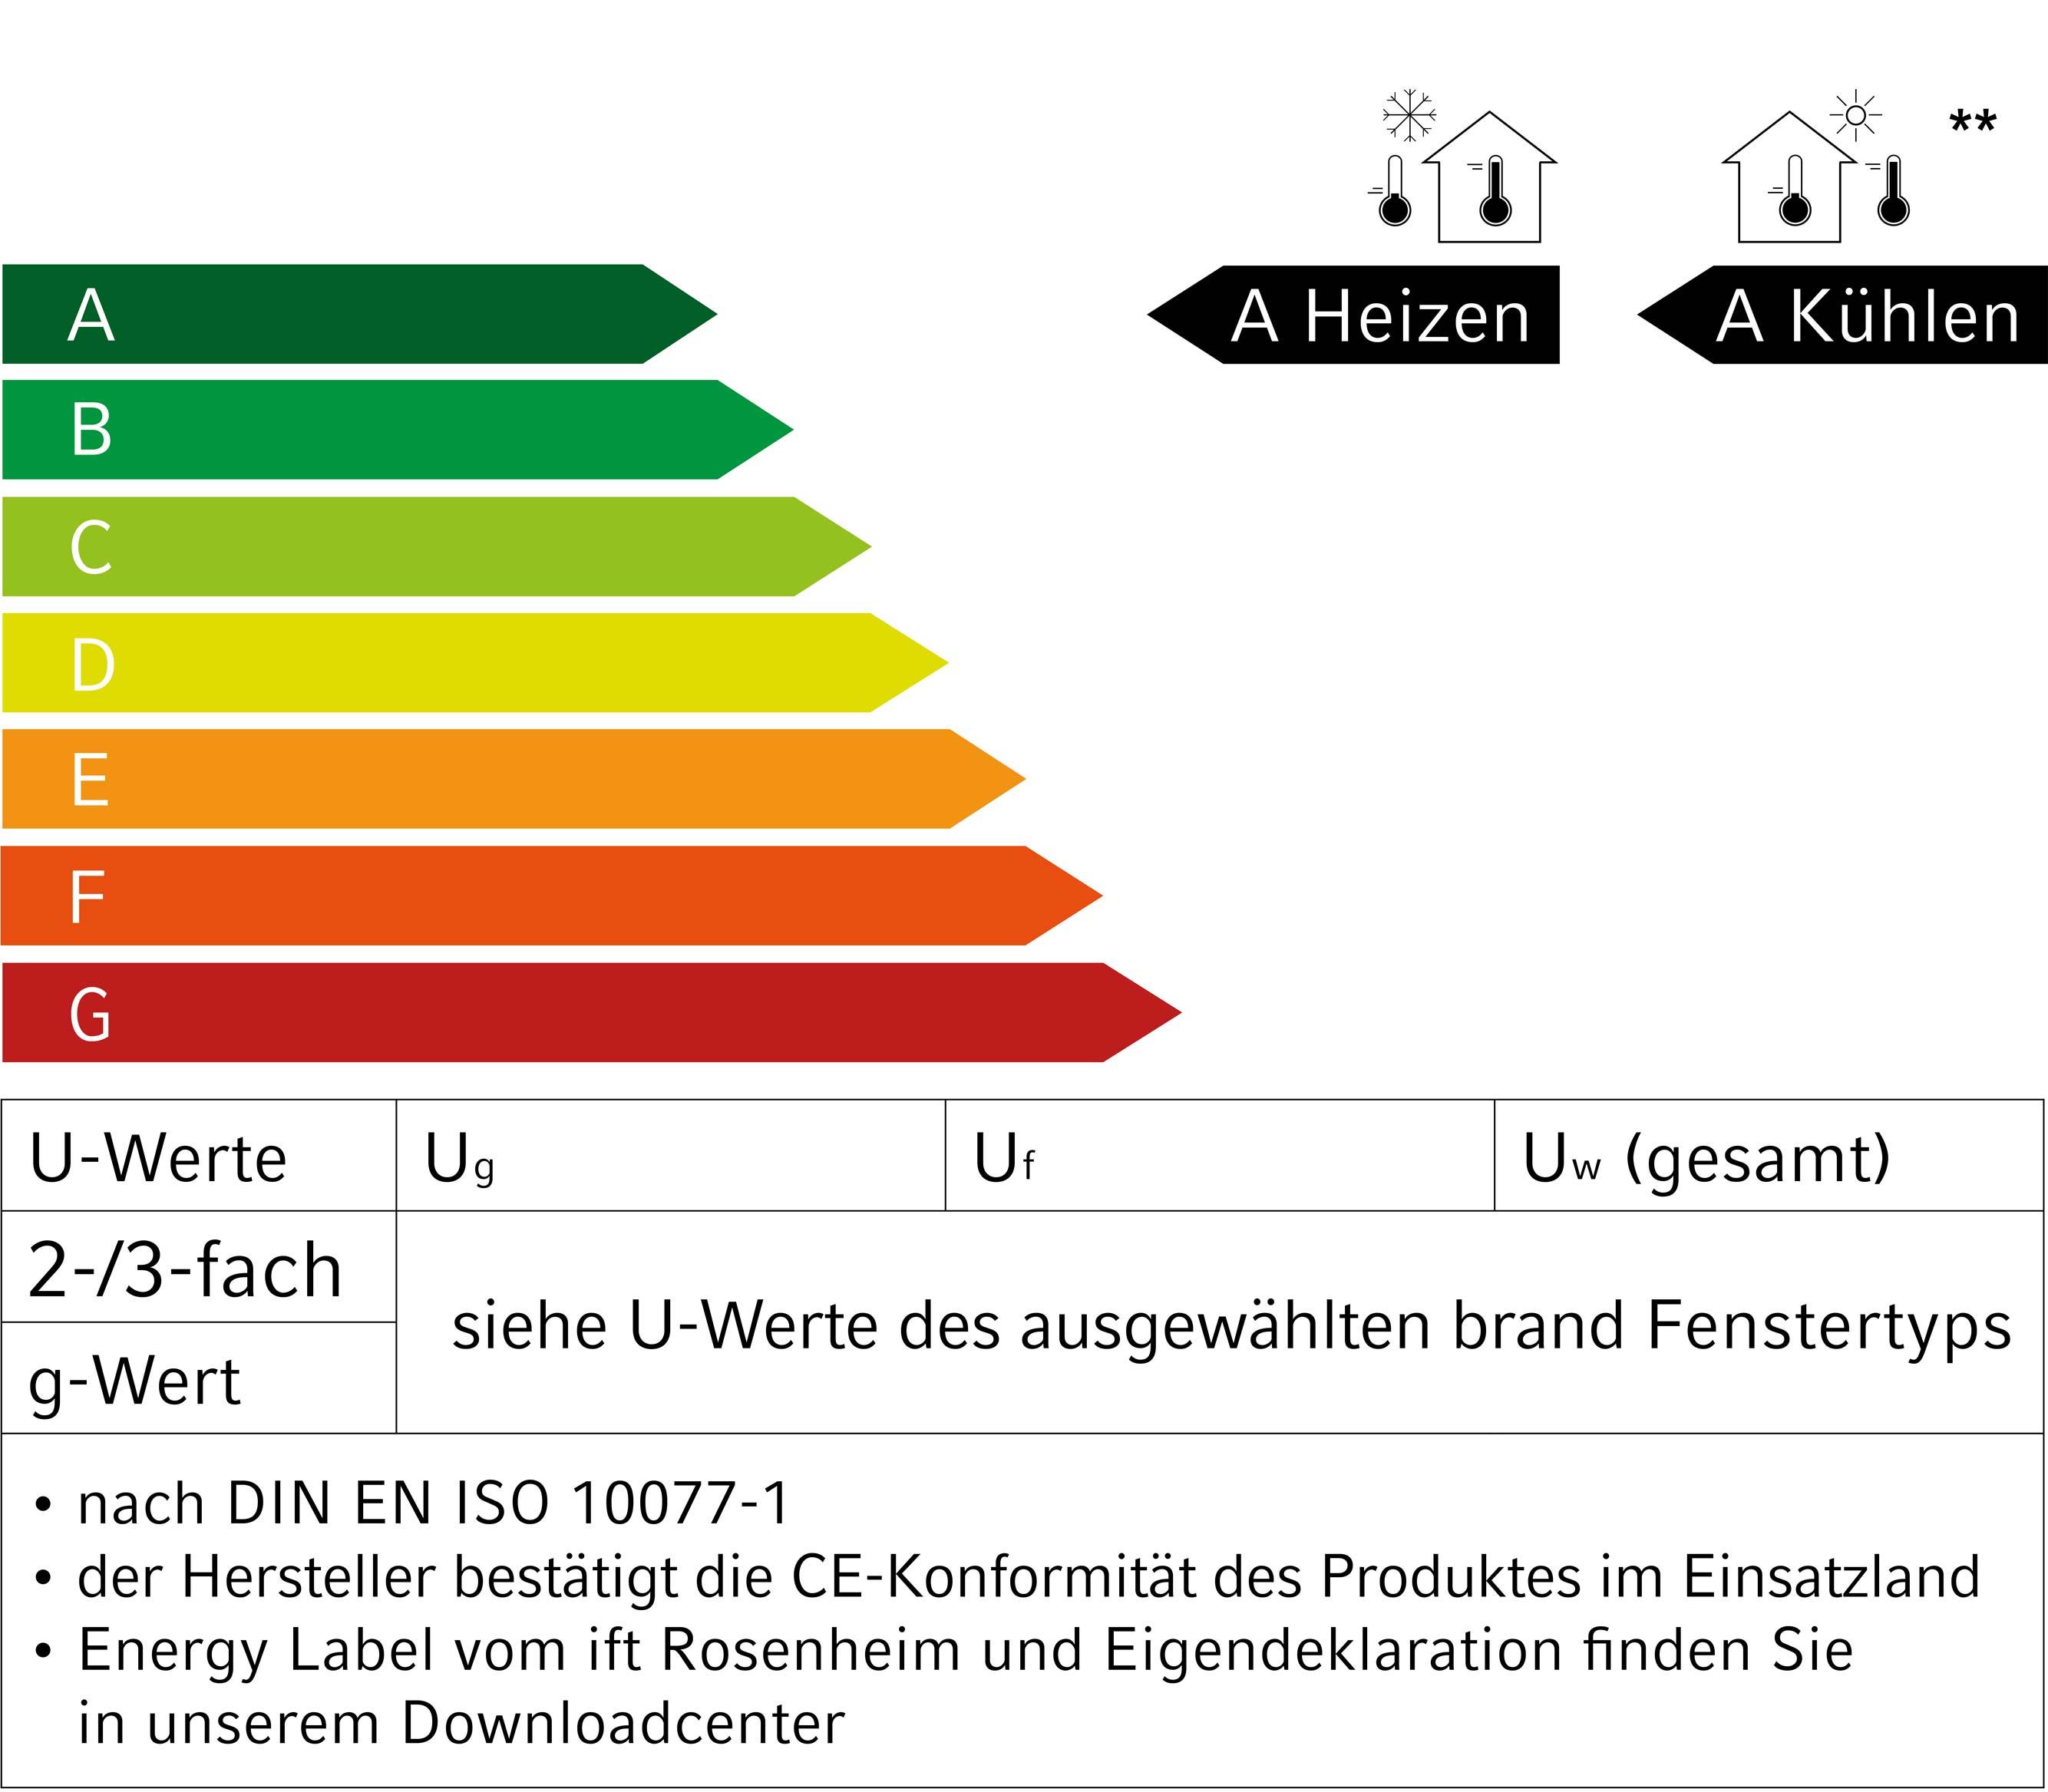 Energie Label Patio S / Patio Z